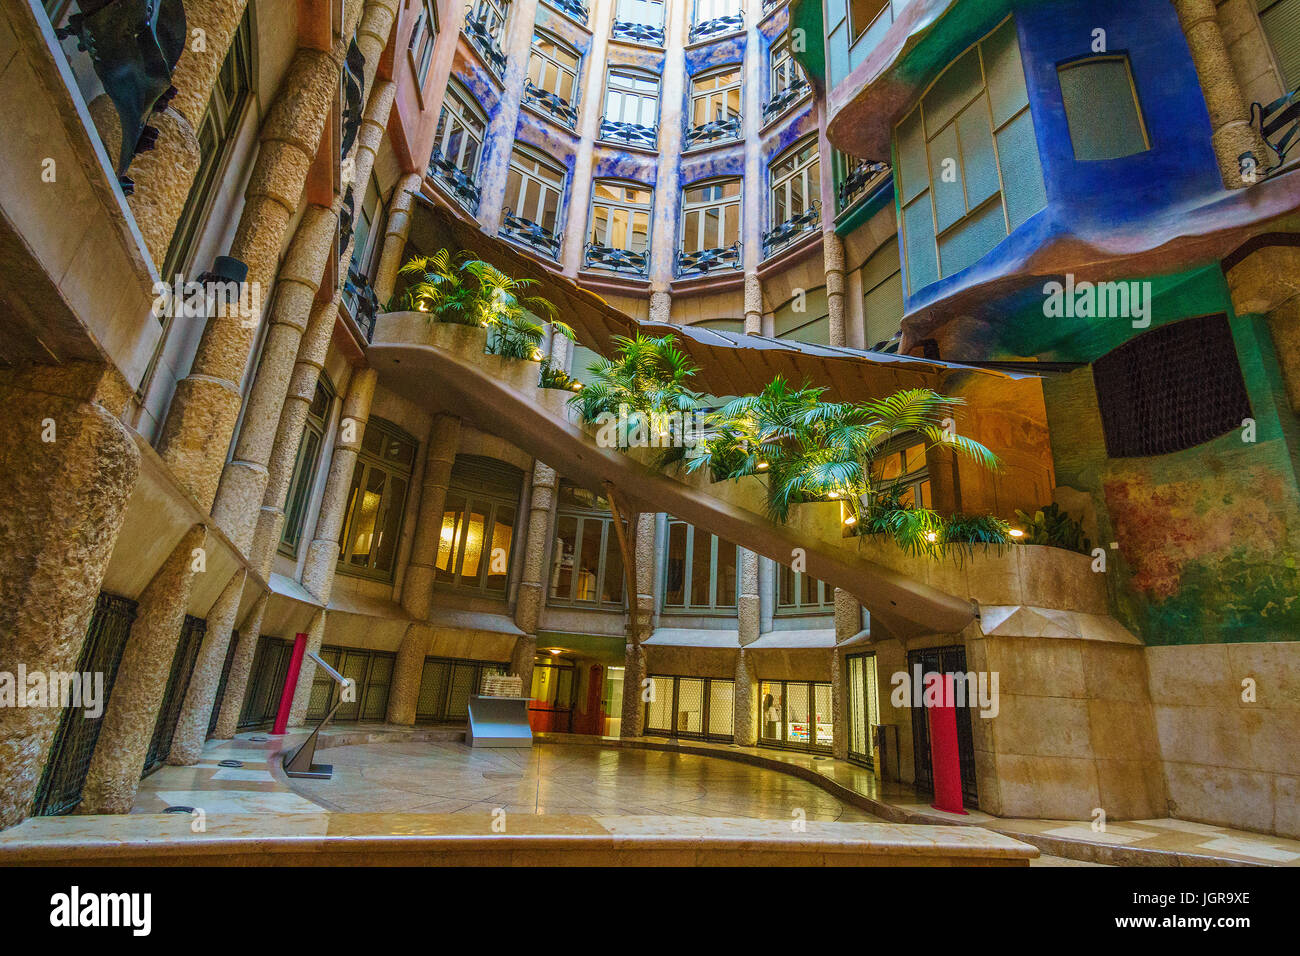 Casa Milà, La Pedrera or 'open quarry' is a famous modernist building in Barcelona, Catalonia, Spain - Stock Image